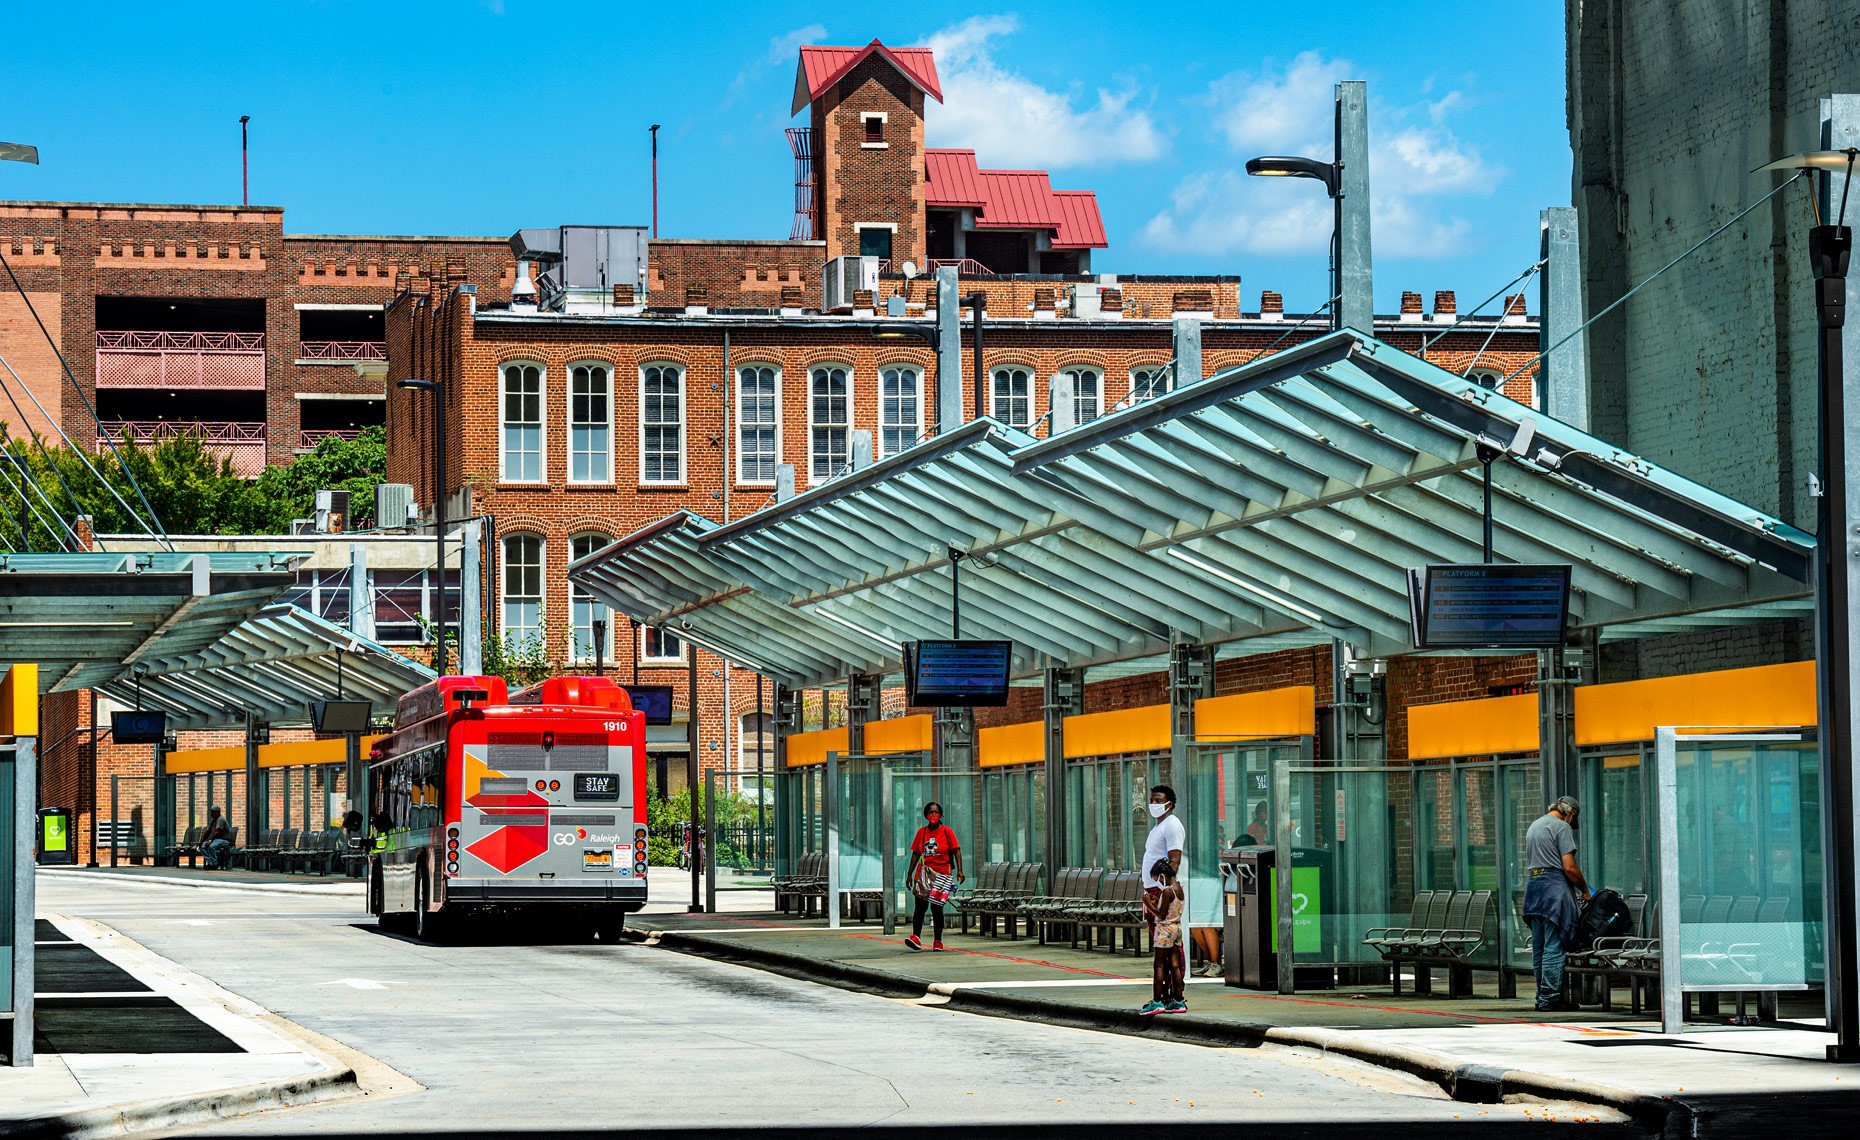 architecture photography Raleigh NC Bryan Regan bus station